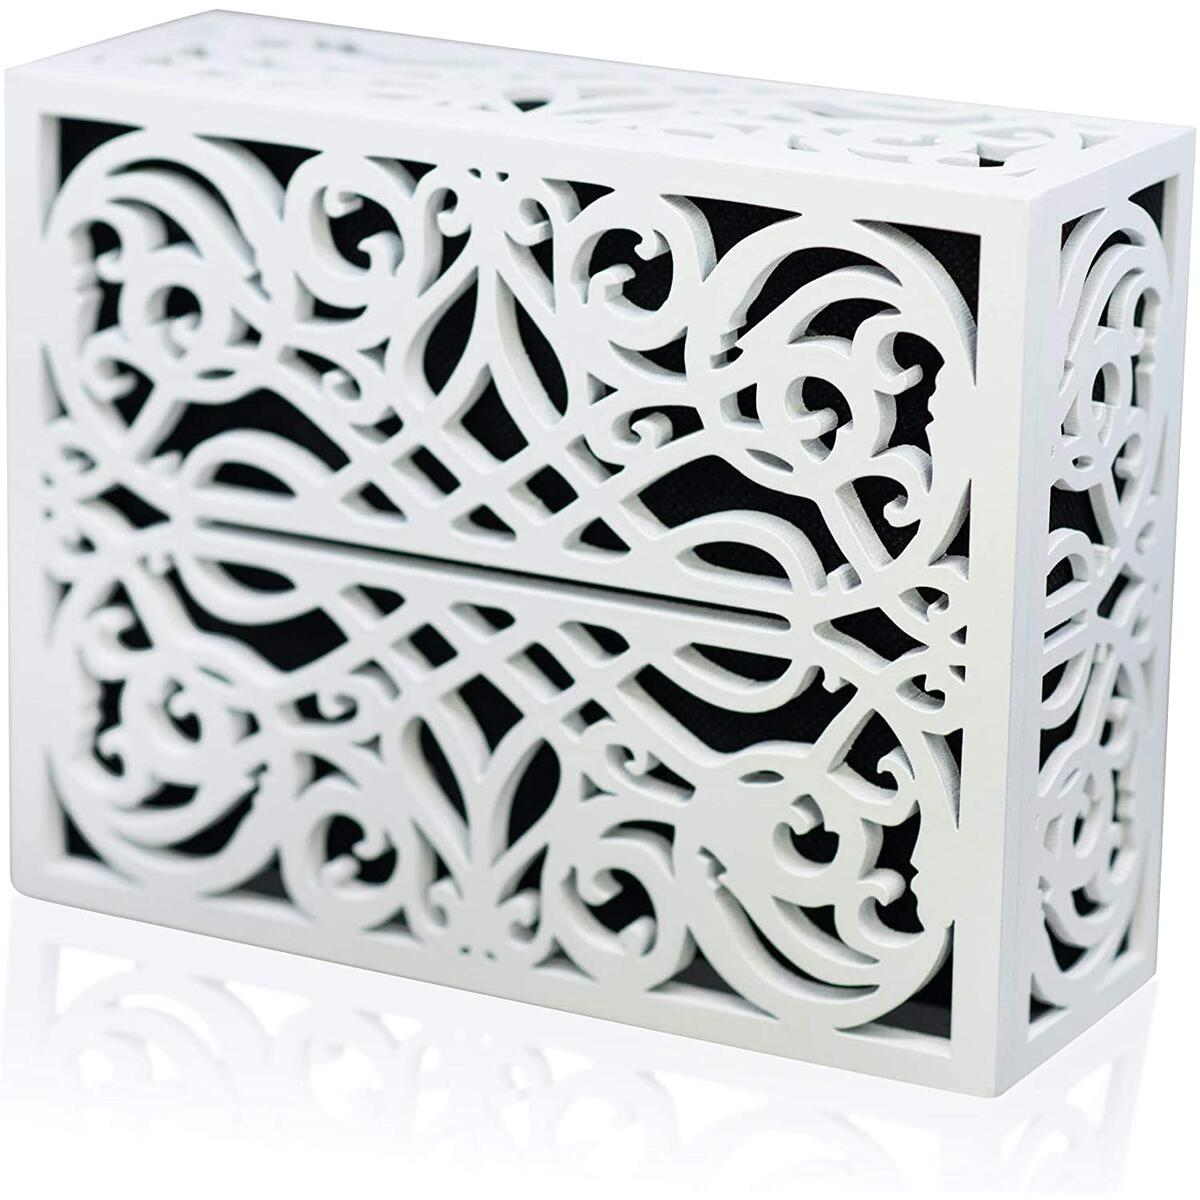 Doorbell Chime Cover Box Corinthian Style Inside Doorbell Chime Covering (White)